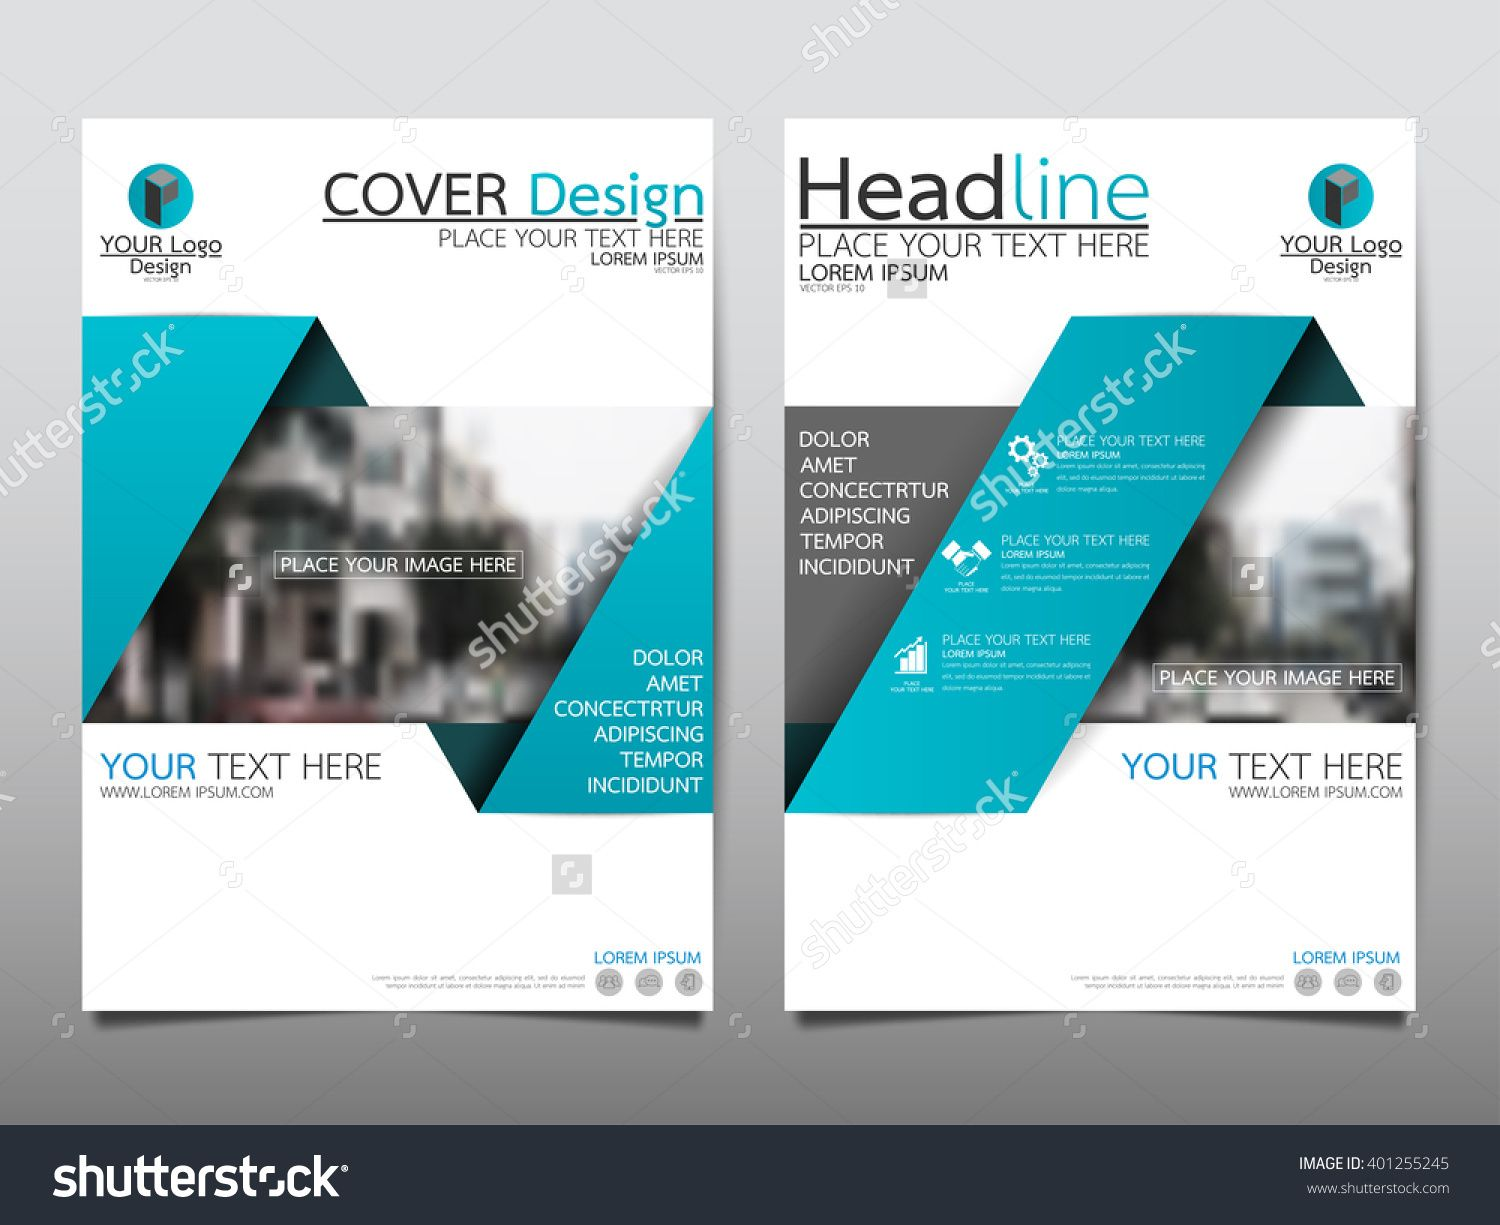 Blue Annual Report Brochure Flyer Design Template Vector, Leaflet Cover  Presentation Abstract Flat Background,  Annual Report Template Design